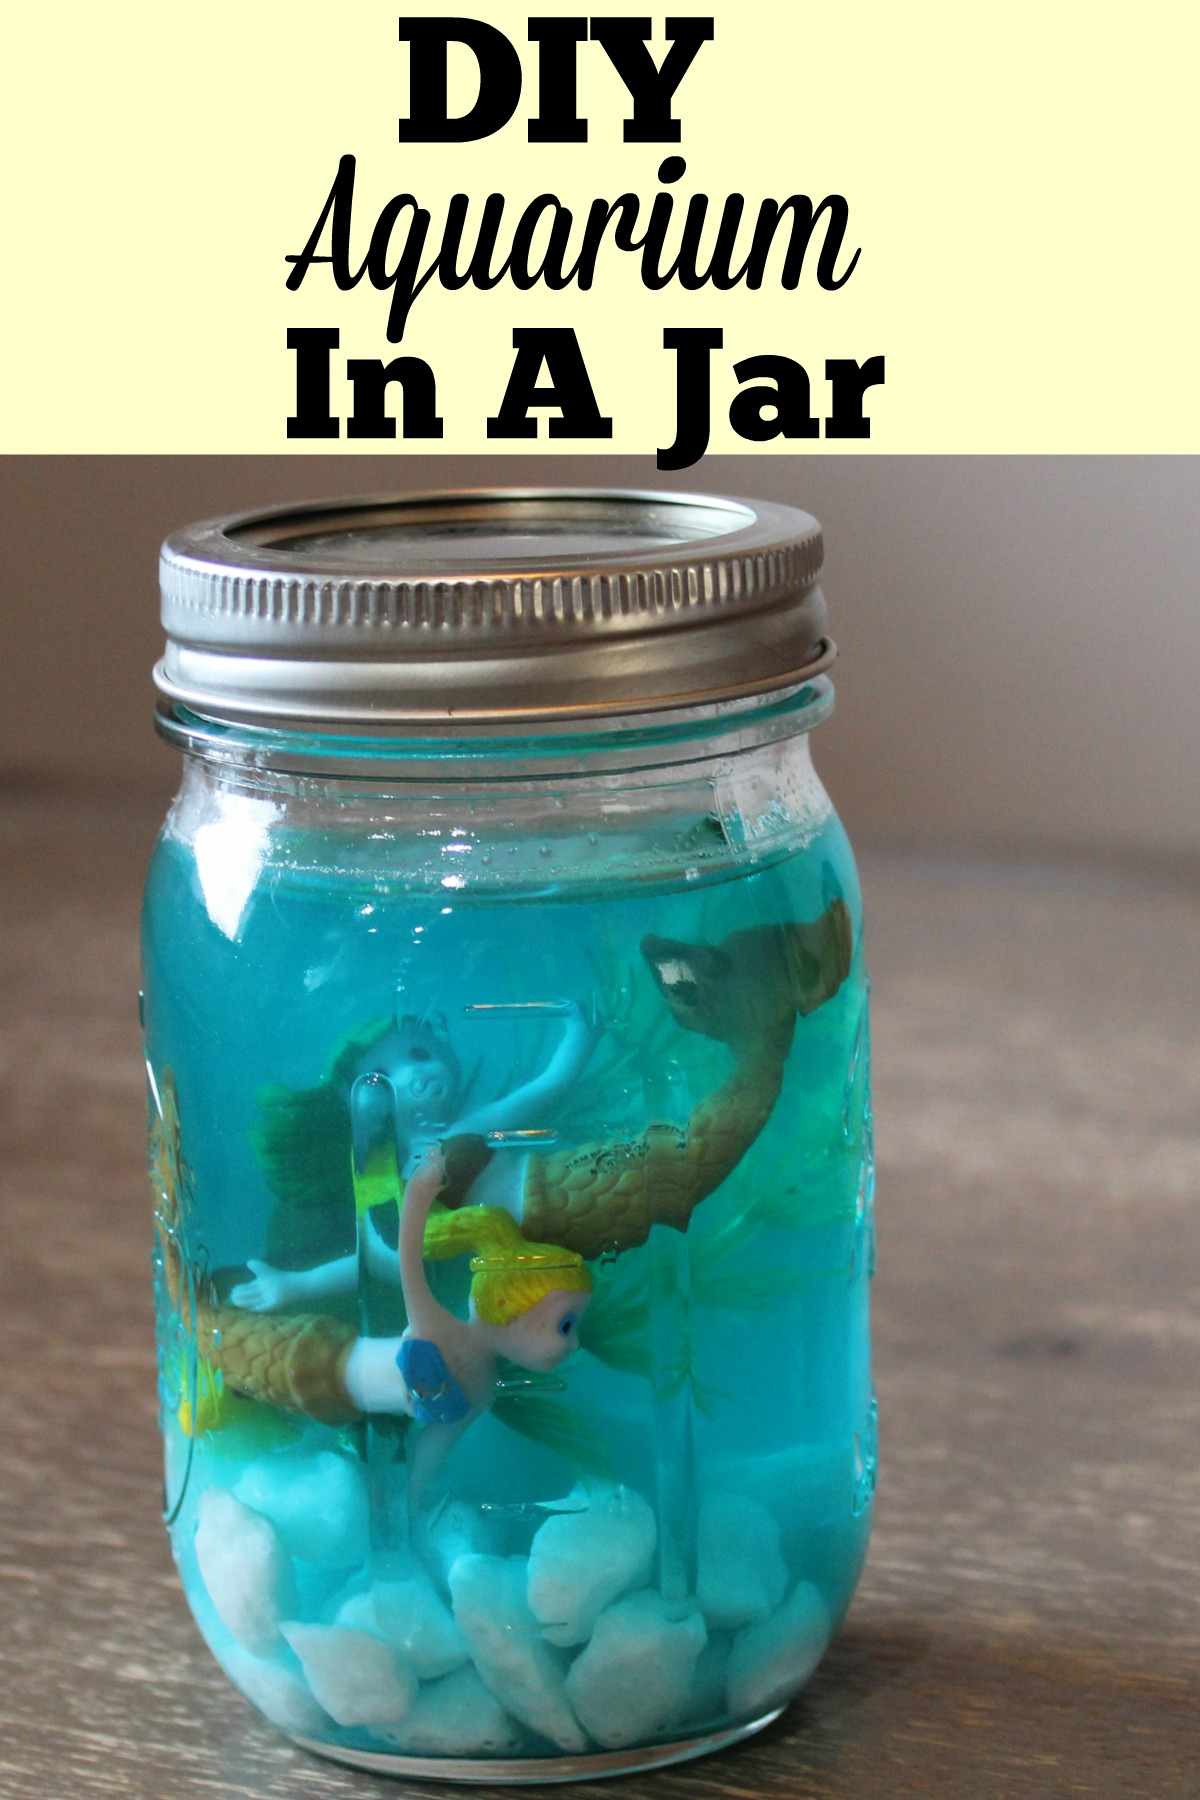 DIY Aquarium In A Jar - Hey guys, I'm back with another quick and easy craft idea for the kids! This DIY Aquarium In A Jar is a great way to keep the younger kids entertained!